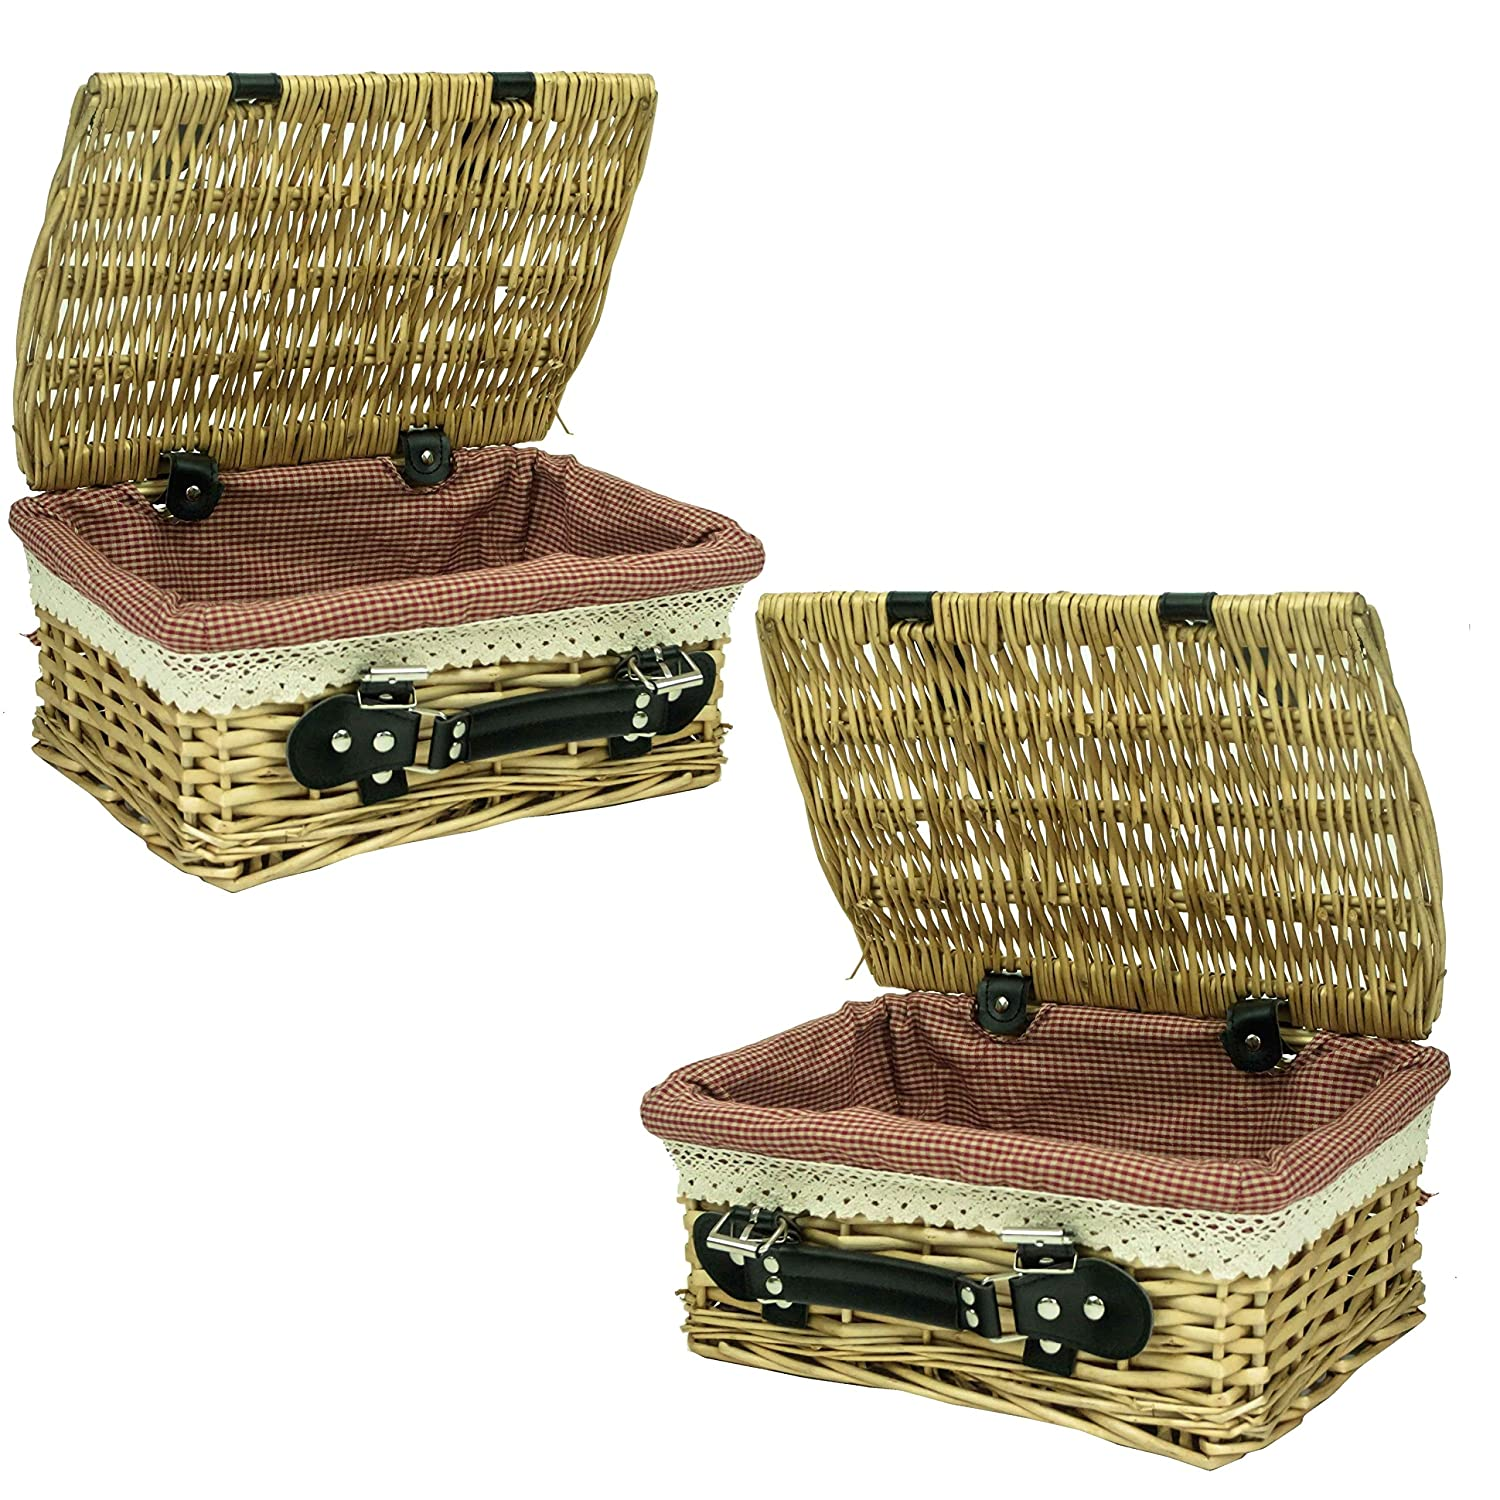 east2eden Honey Wicker Lidded Hamper Basket with Leather Handle and Red Gingham Lace Lining (Set of 2 Small) e2e